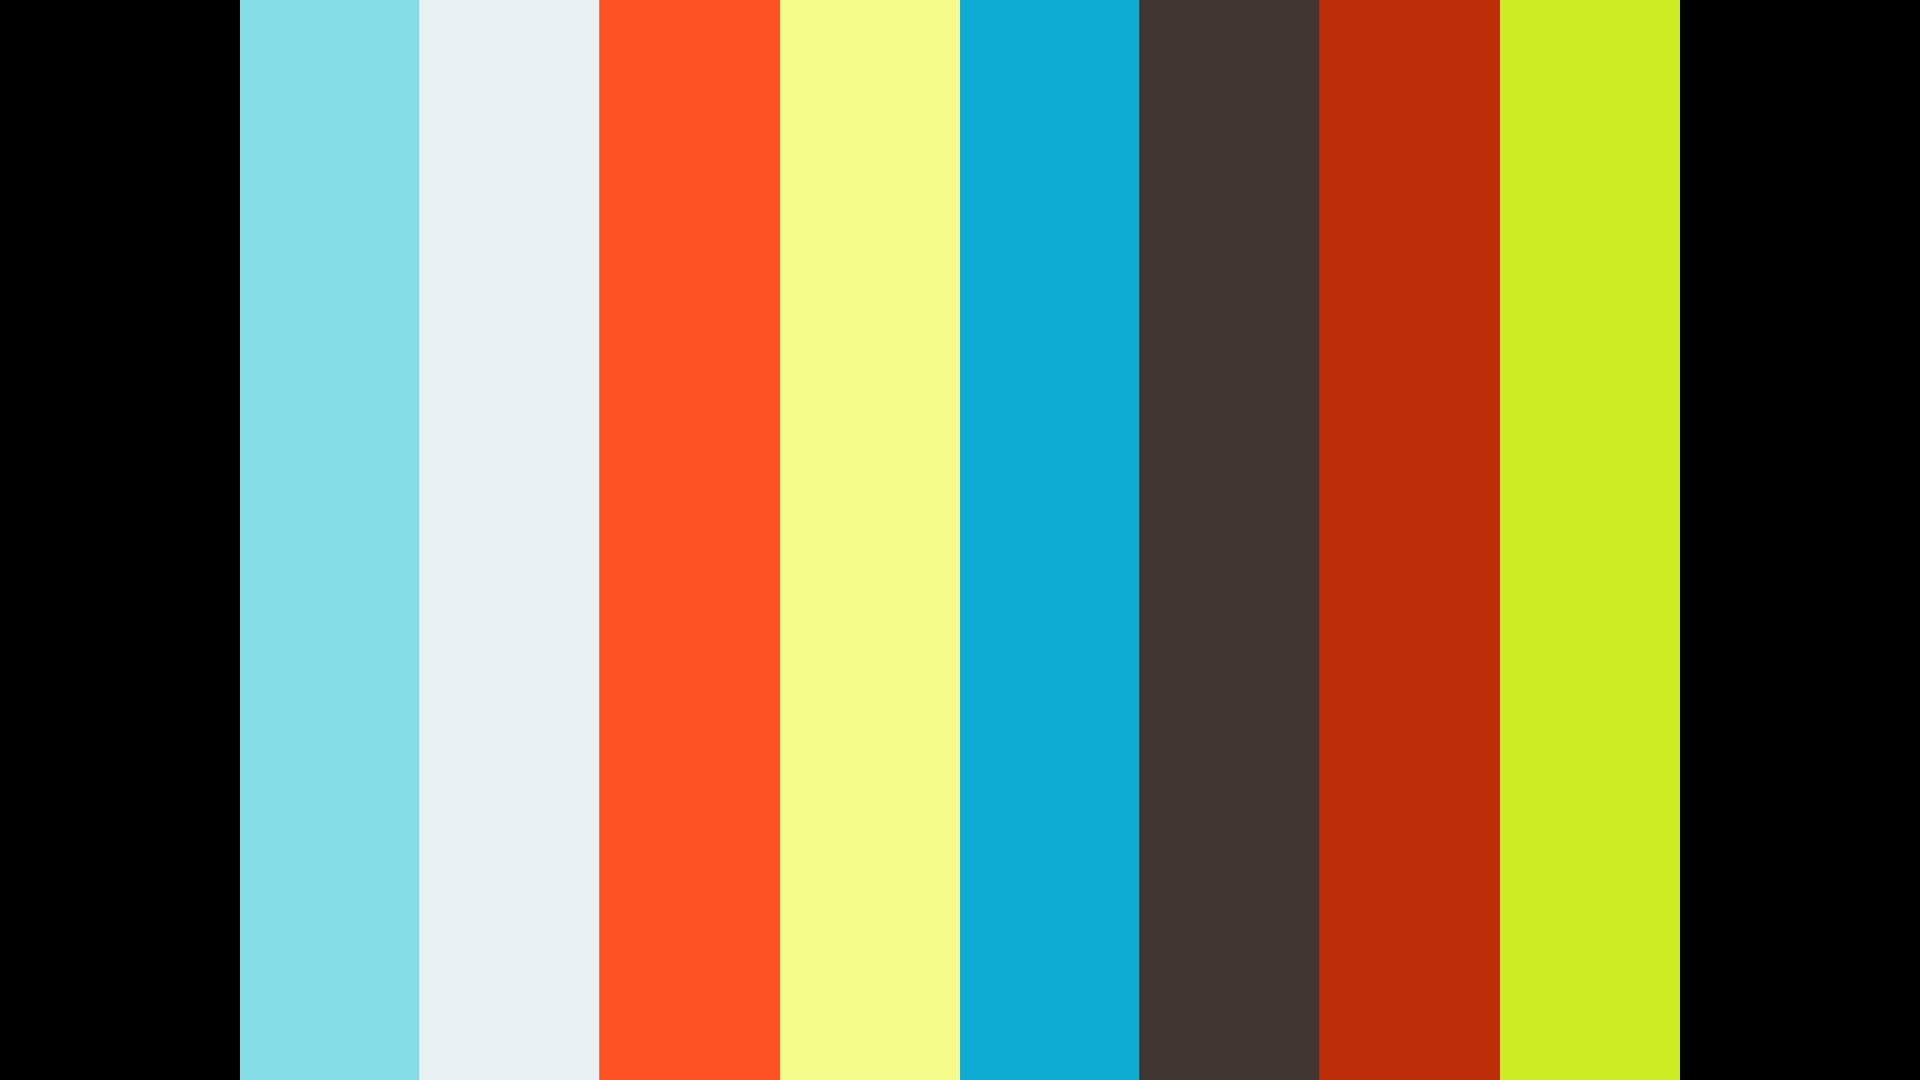 Green Bridge - End of project (Ext)